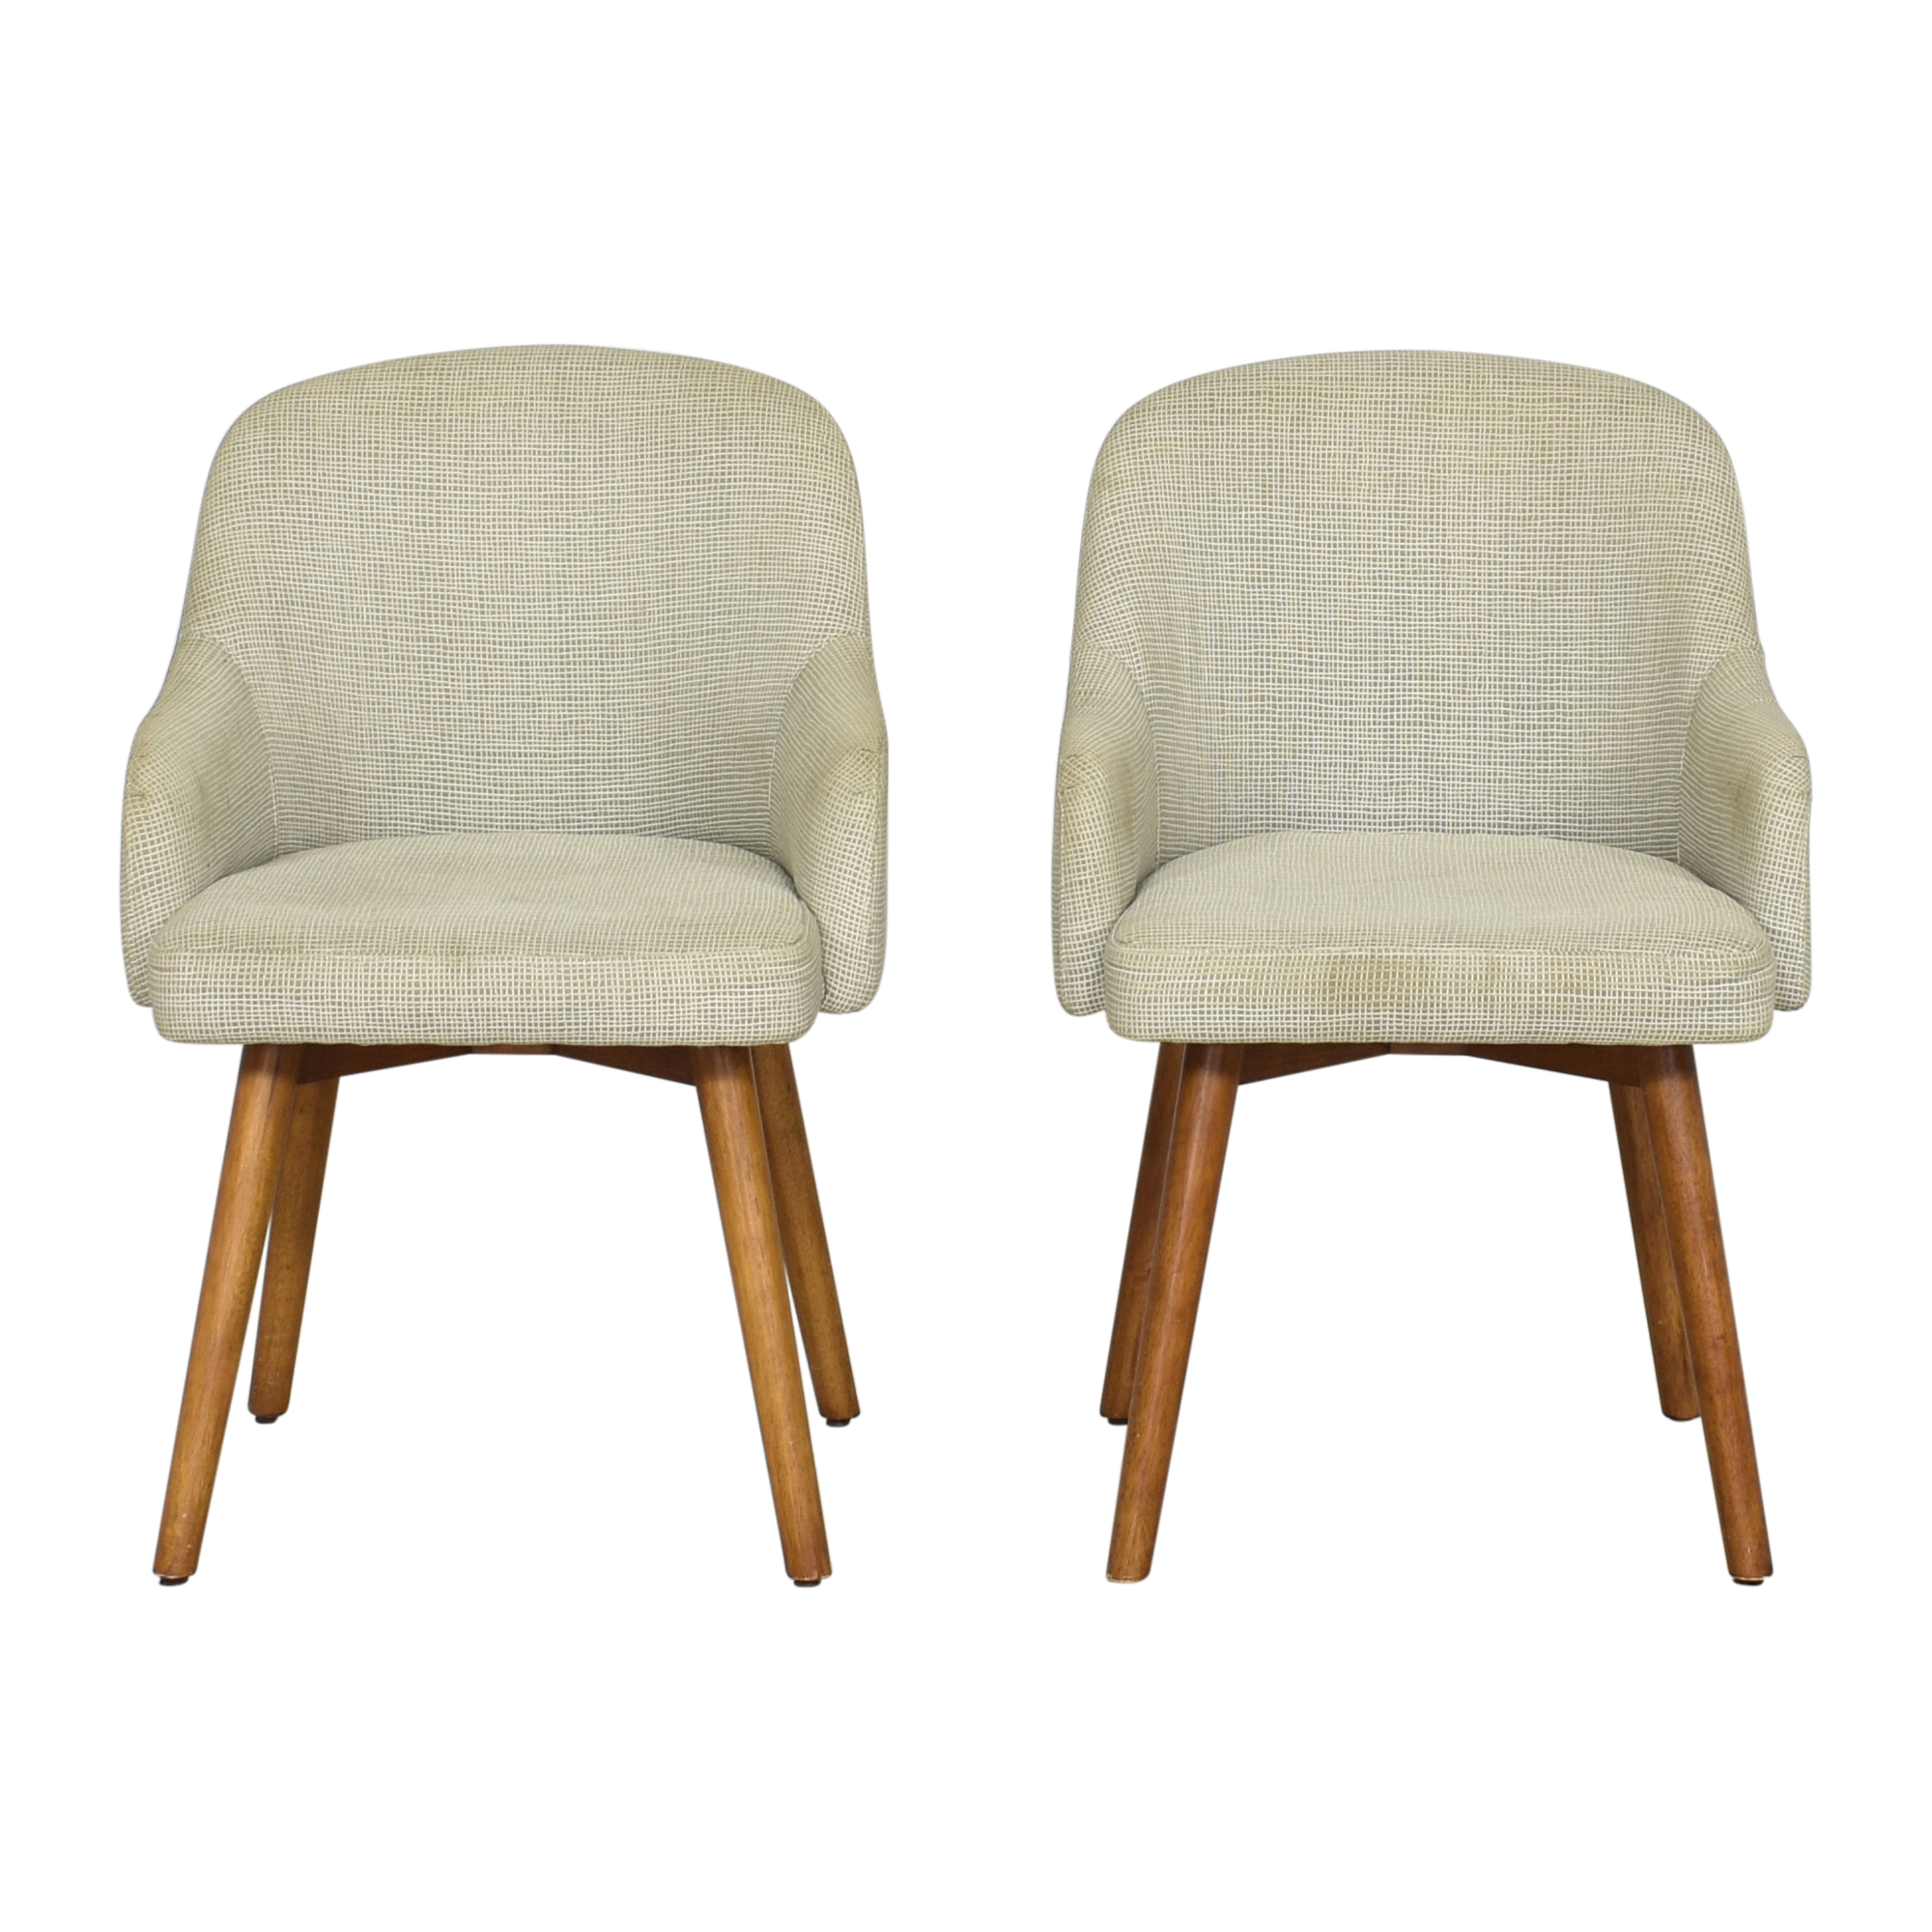 West Elm West Elm Upholstered Dining Chairs Dining Chairs